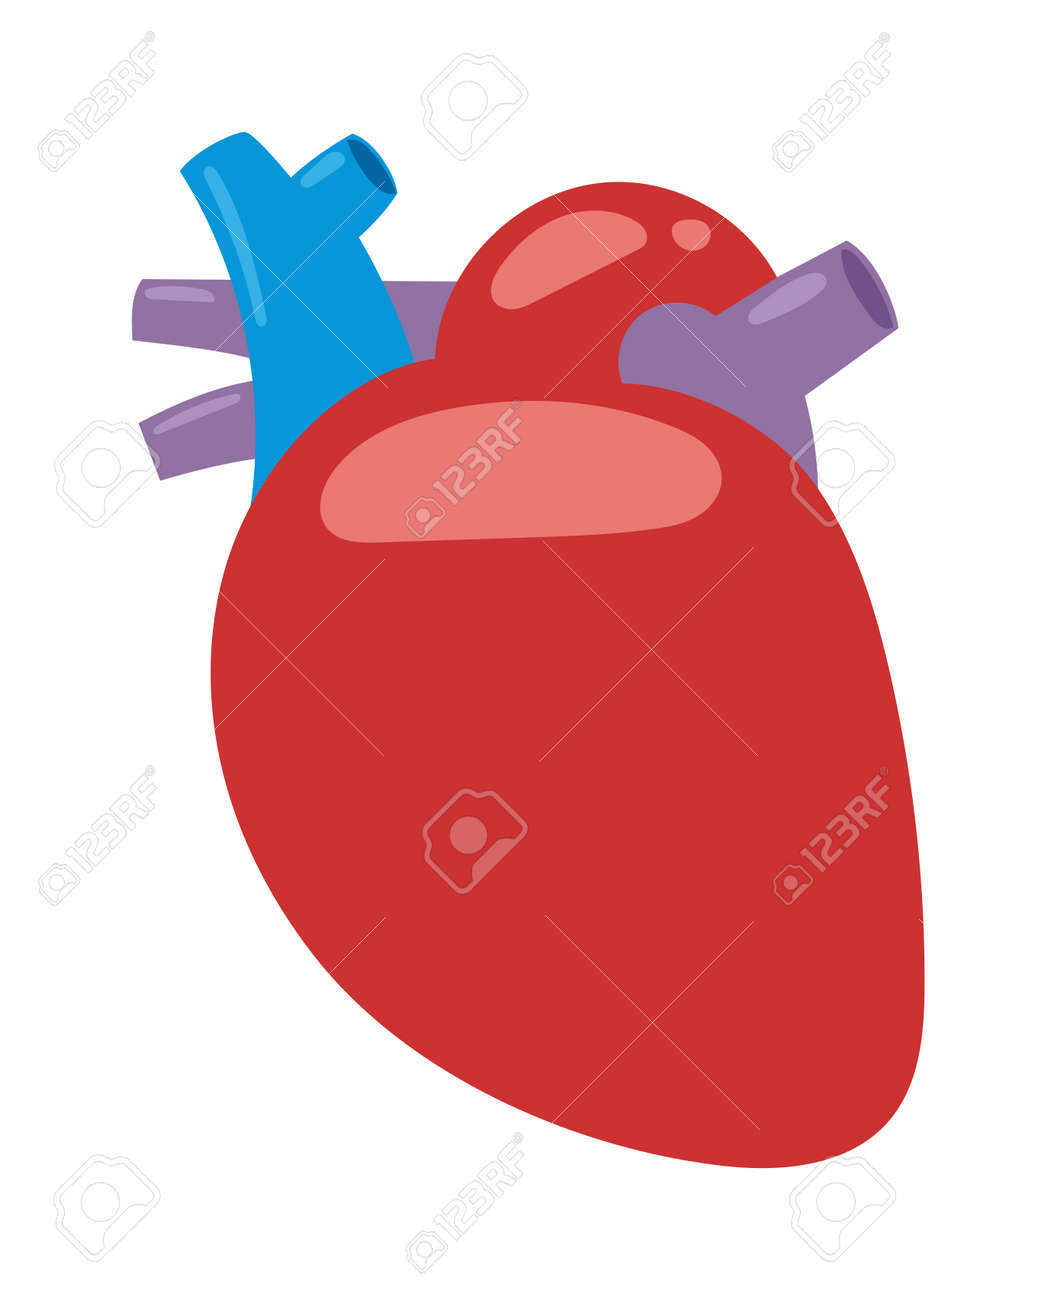 Human Heart Anatomy Isolated On White Vector Illustration Anatomy